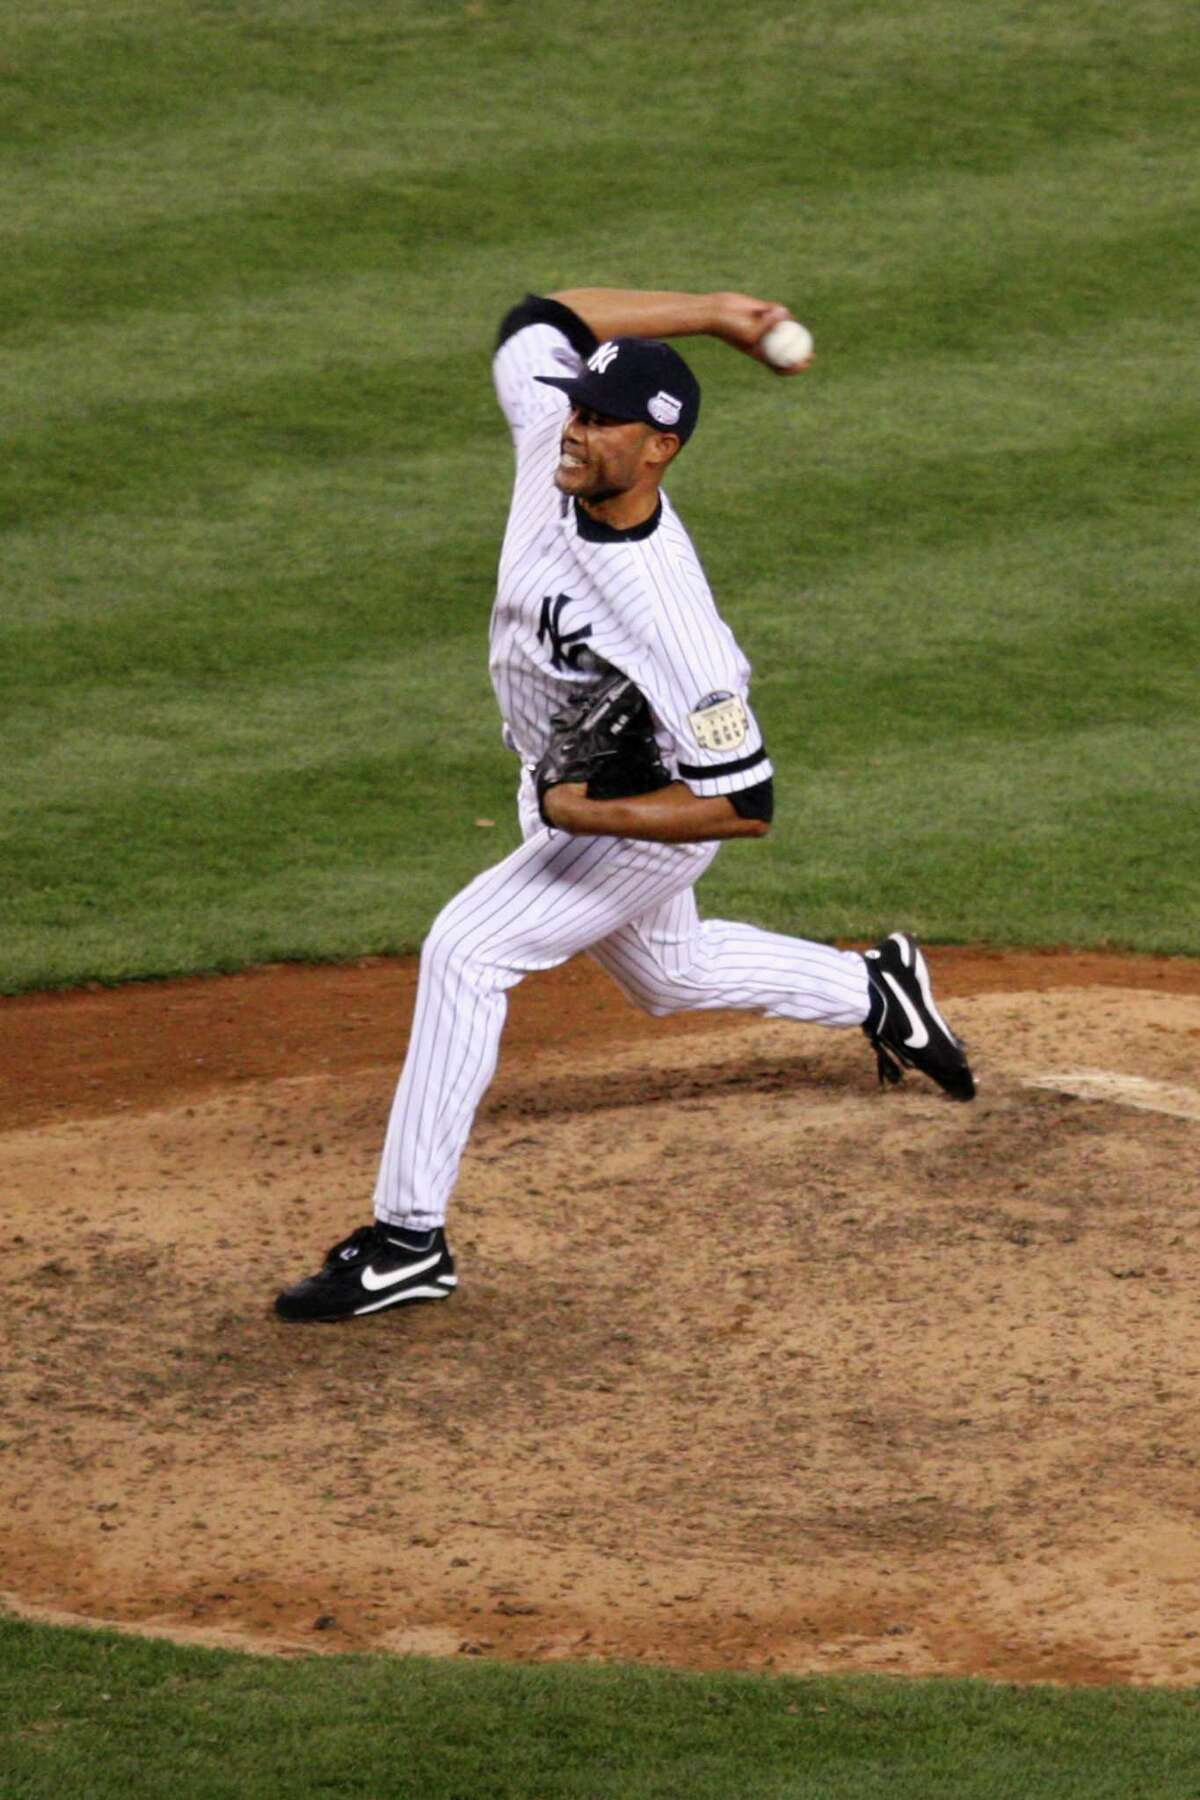 Mariano Rivera of the New York Yankees pitches in the ninth inning of the 79th Major League Baseball All-Star Game at Yankee Stadium in the Bronx on Tuesday, July 15, 2008.